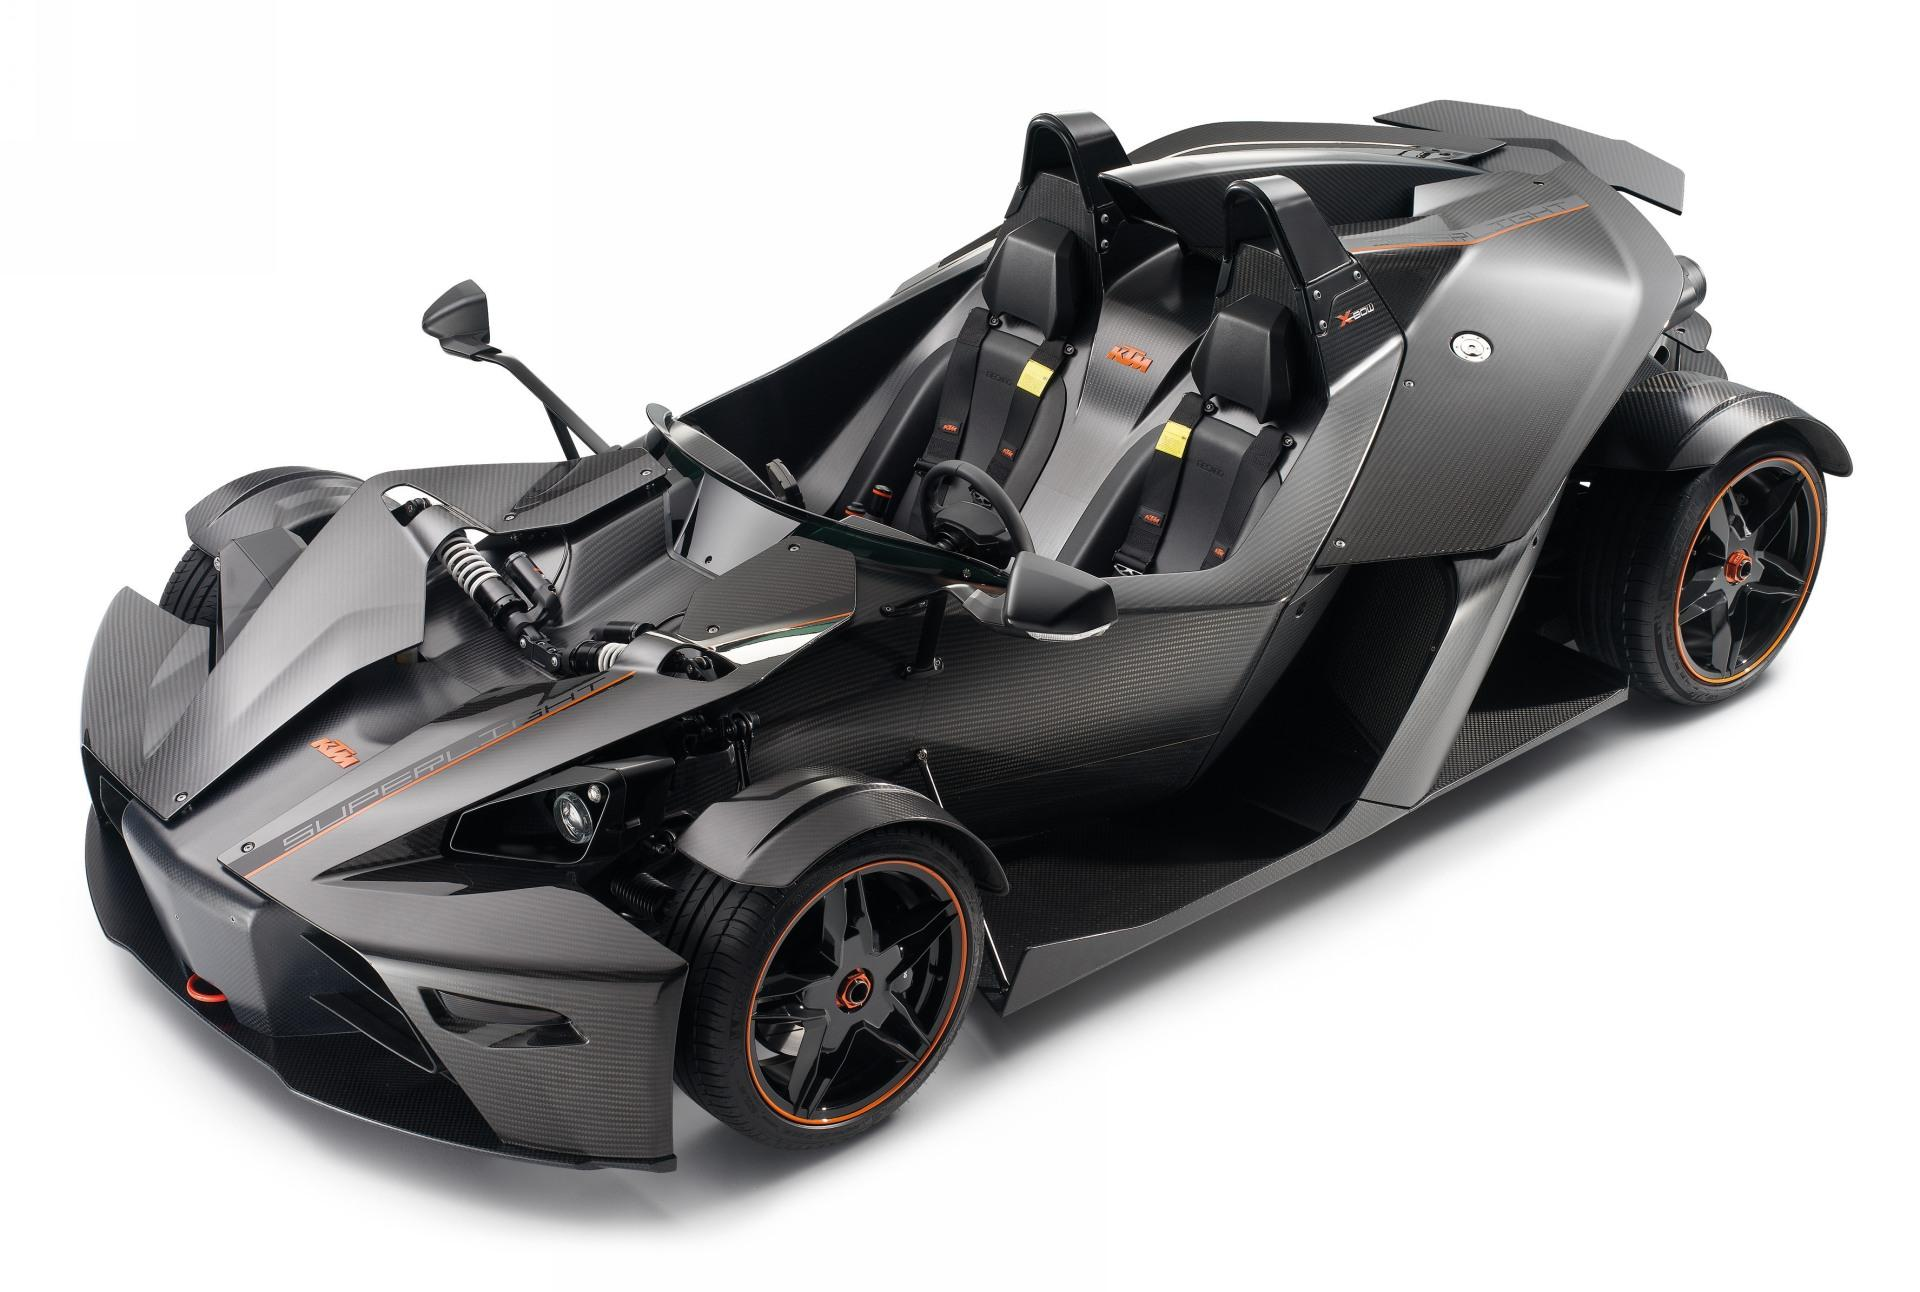 2009 ktm x bow superlight. Black Bedroom Furniture Sets. Home Design Ideas